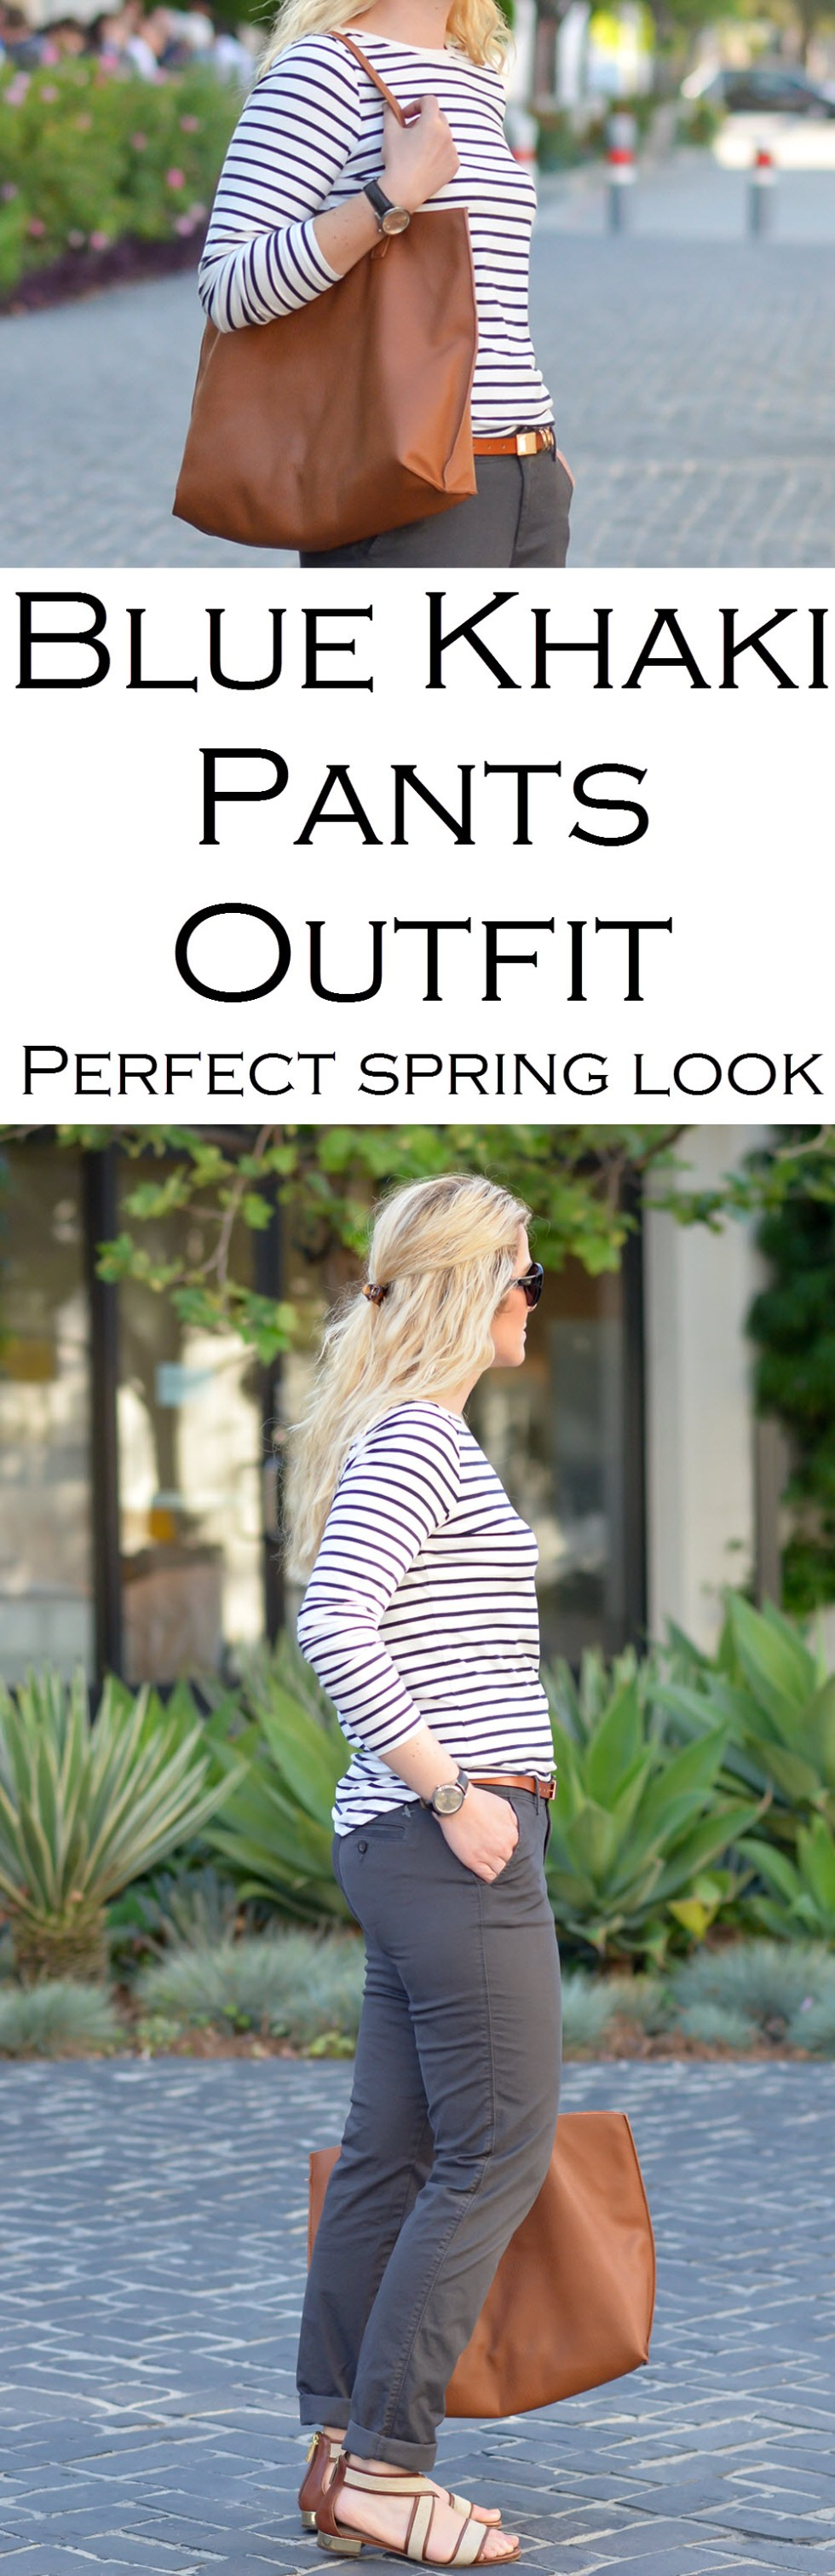 Blue Khaki Pants Outfit for Women - Spring Outfit Ideas. Striped long sleeve shirts make the perfect casual, chic look for women..